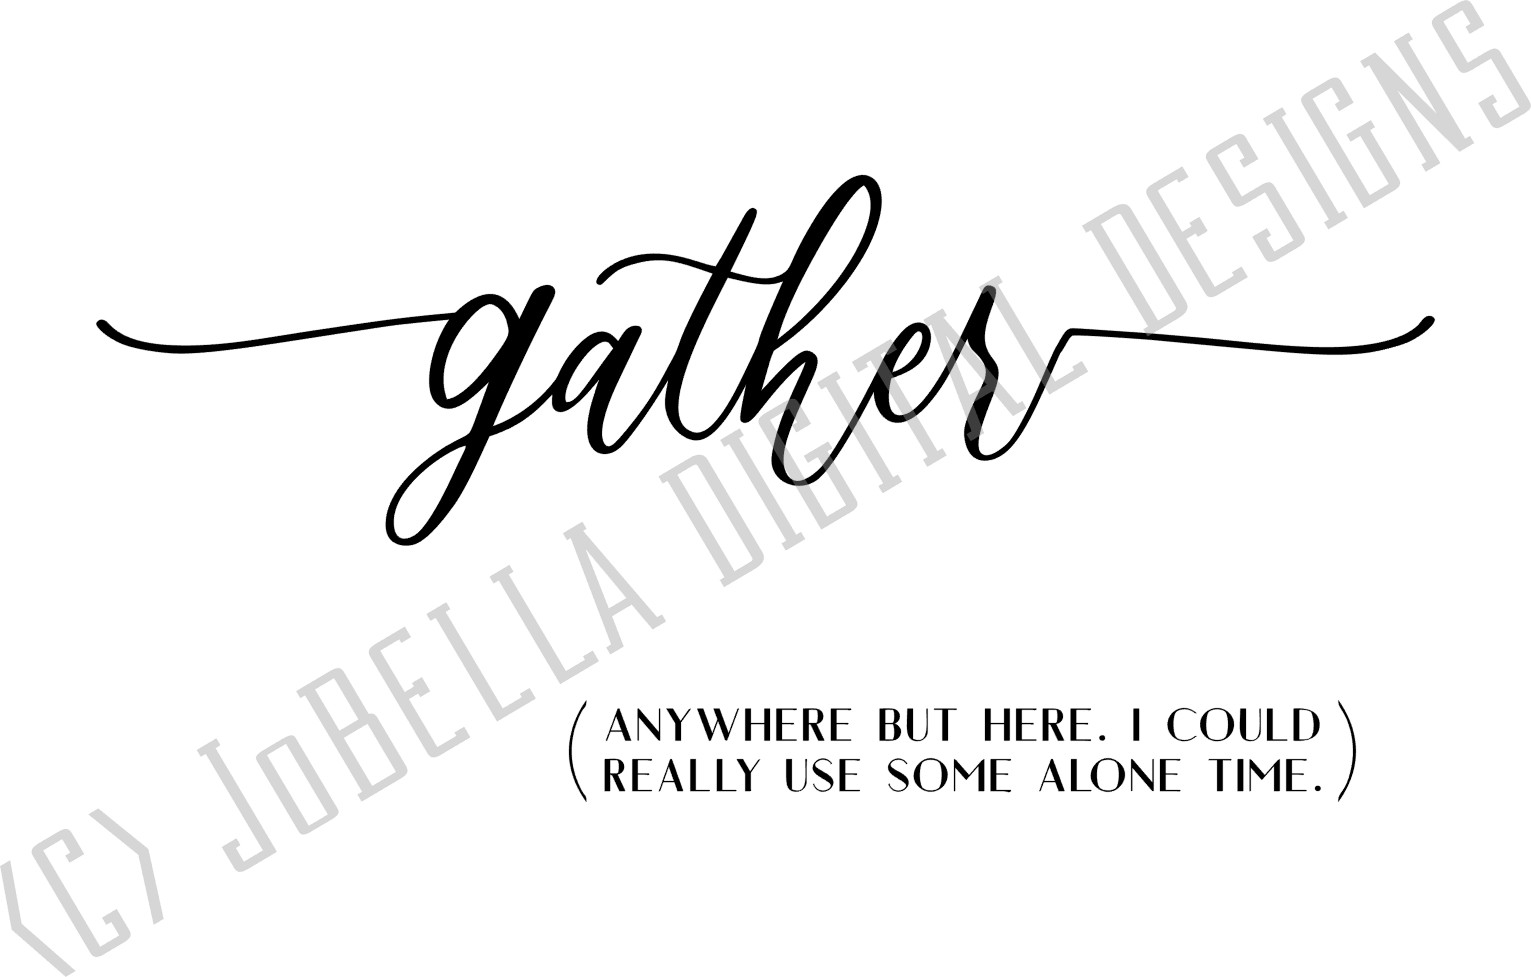 photograph about Gather Printable referred to as Collect Any where Yet Below SVG, Printable and Sublimation PNG